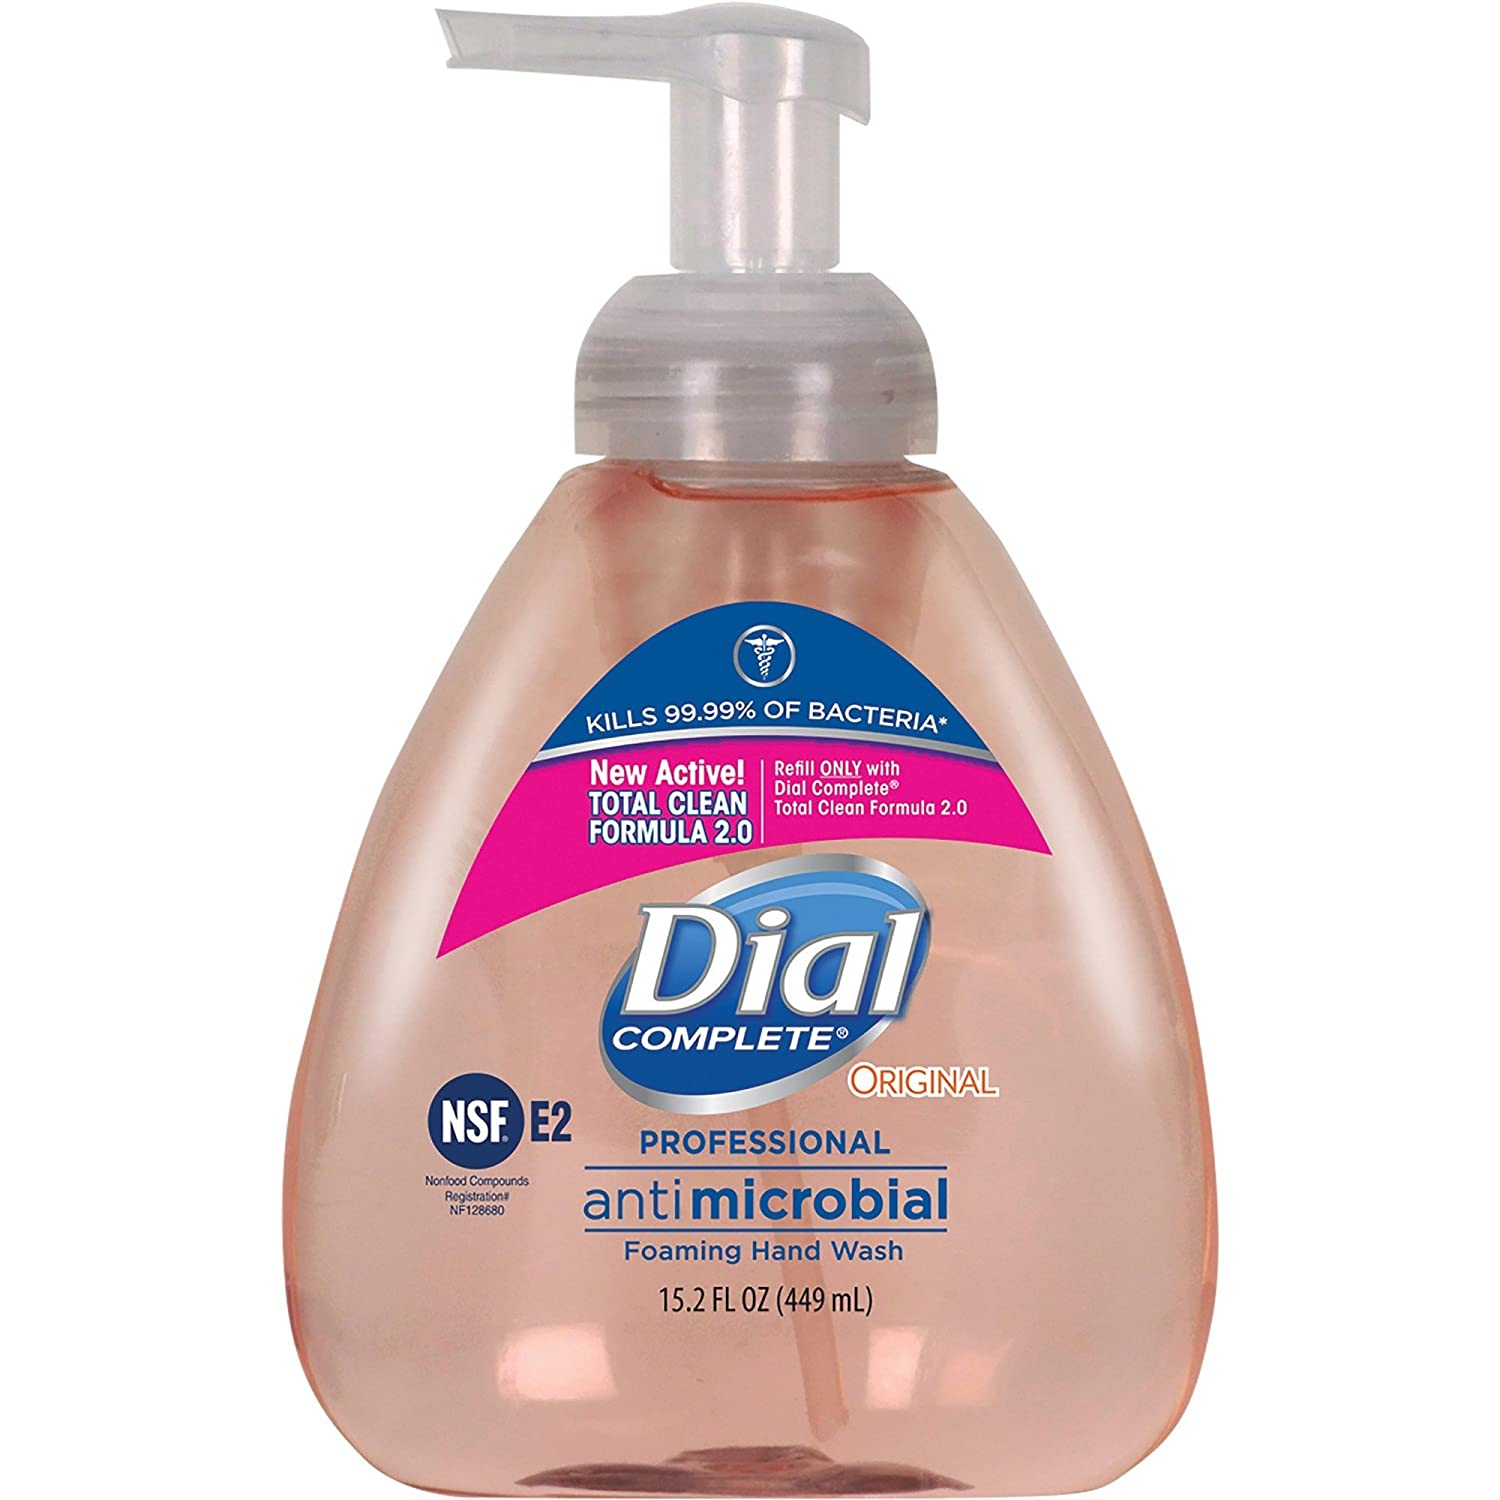 Dial Complete 1437345 Original Professional Healthcare Antimicrobial Foaming Hand Soap with Tabletop Pump, 15.2oz Bottle (Pack of 4)